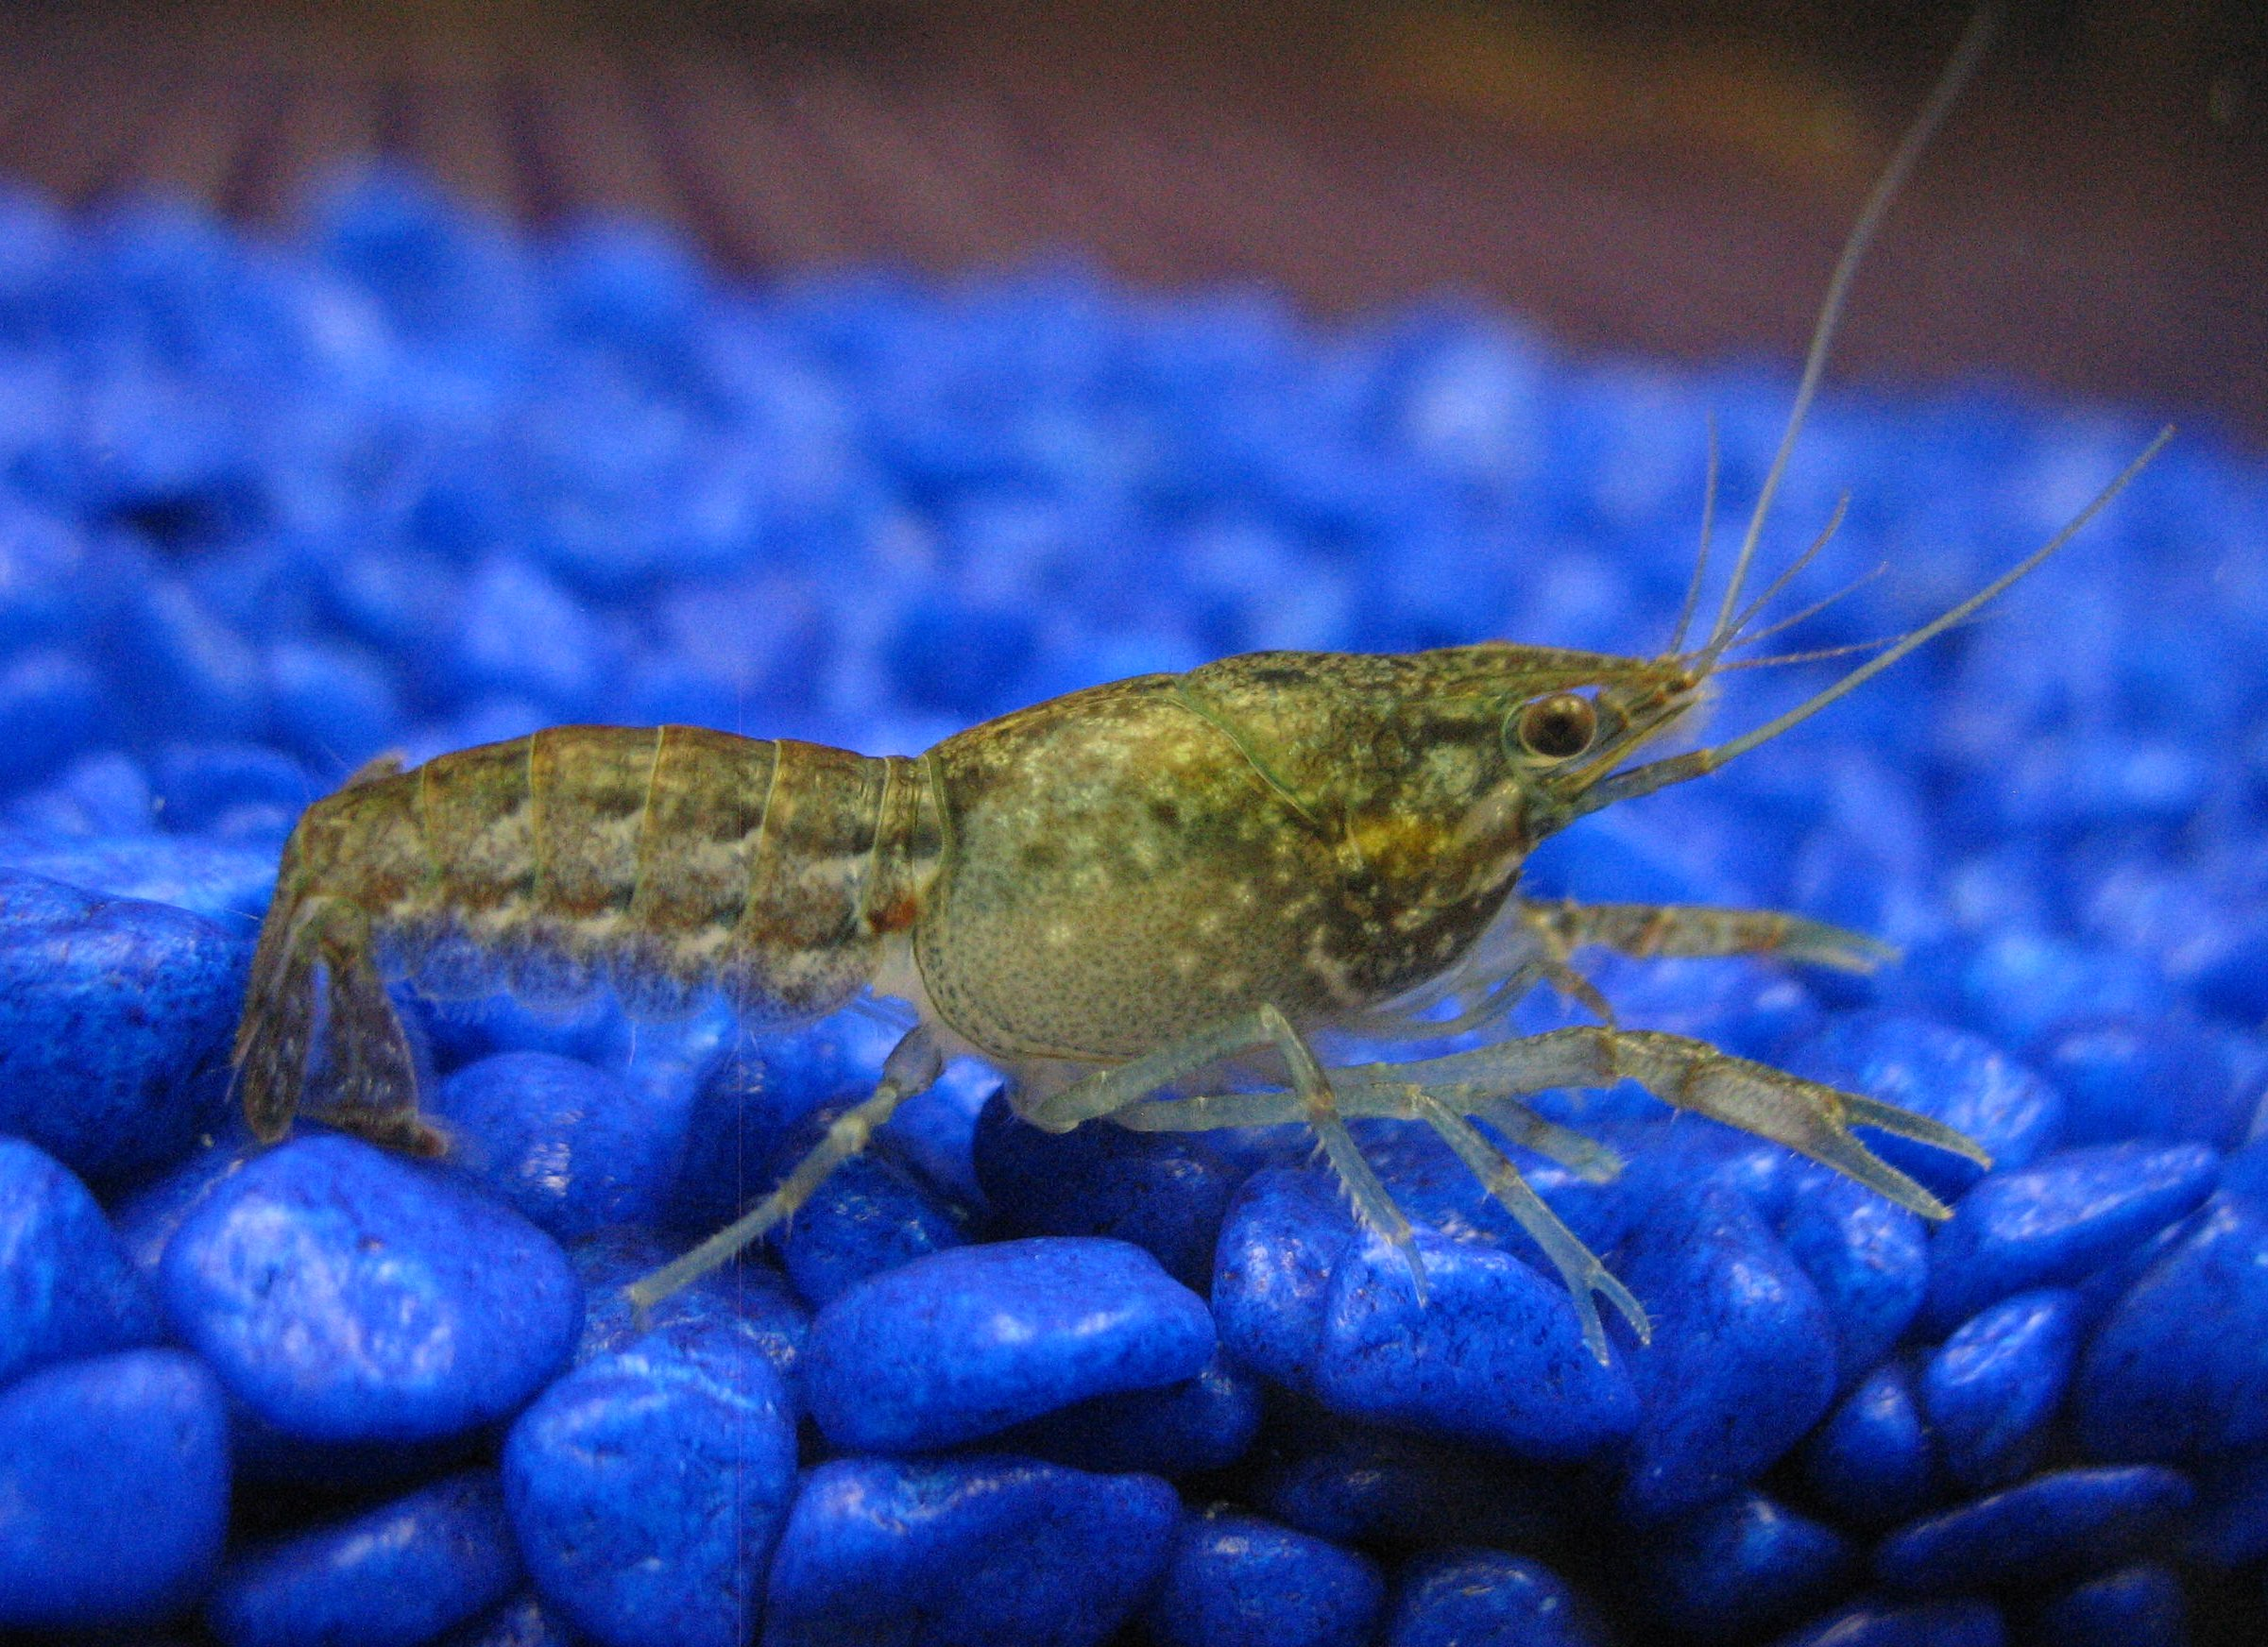 Marble Crayfish : Marbled Crayfish Related Keywords & Suggestions - Marbled Crayfish ...